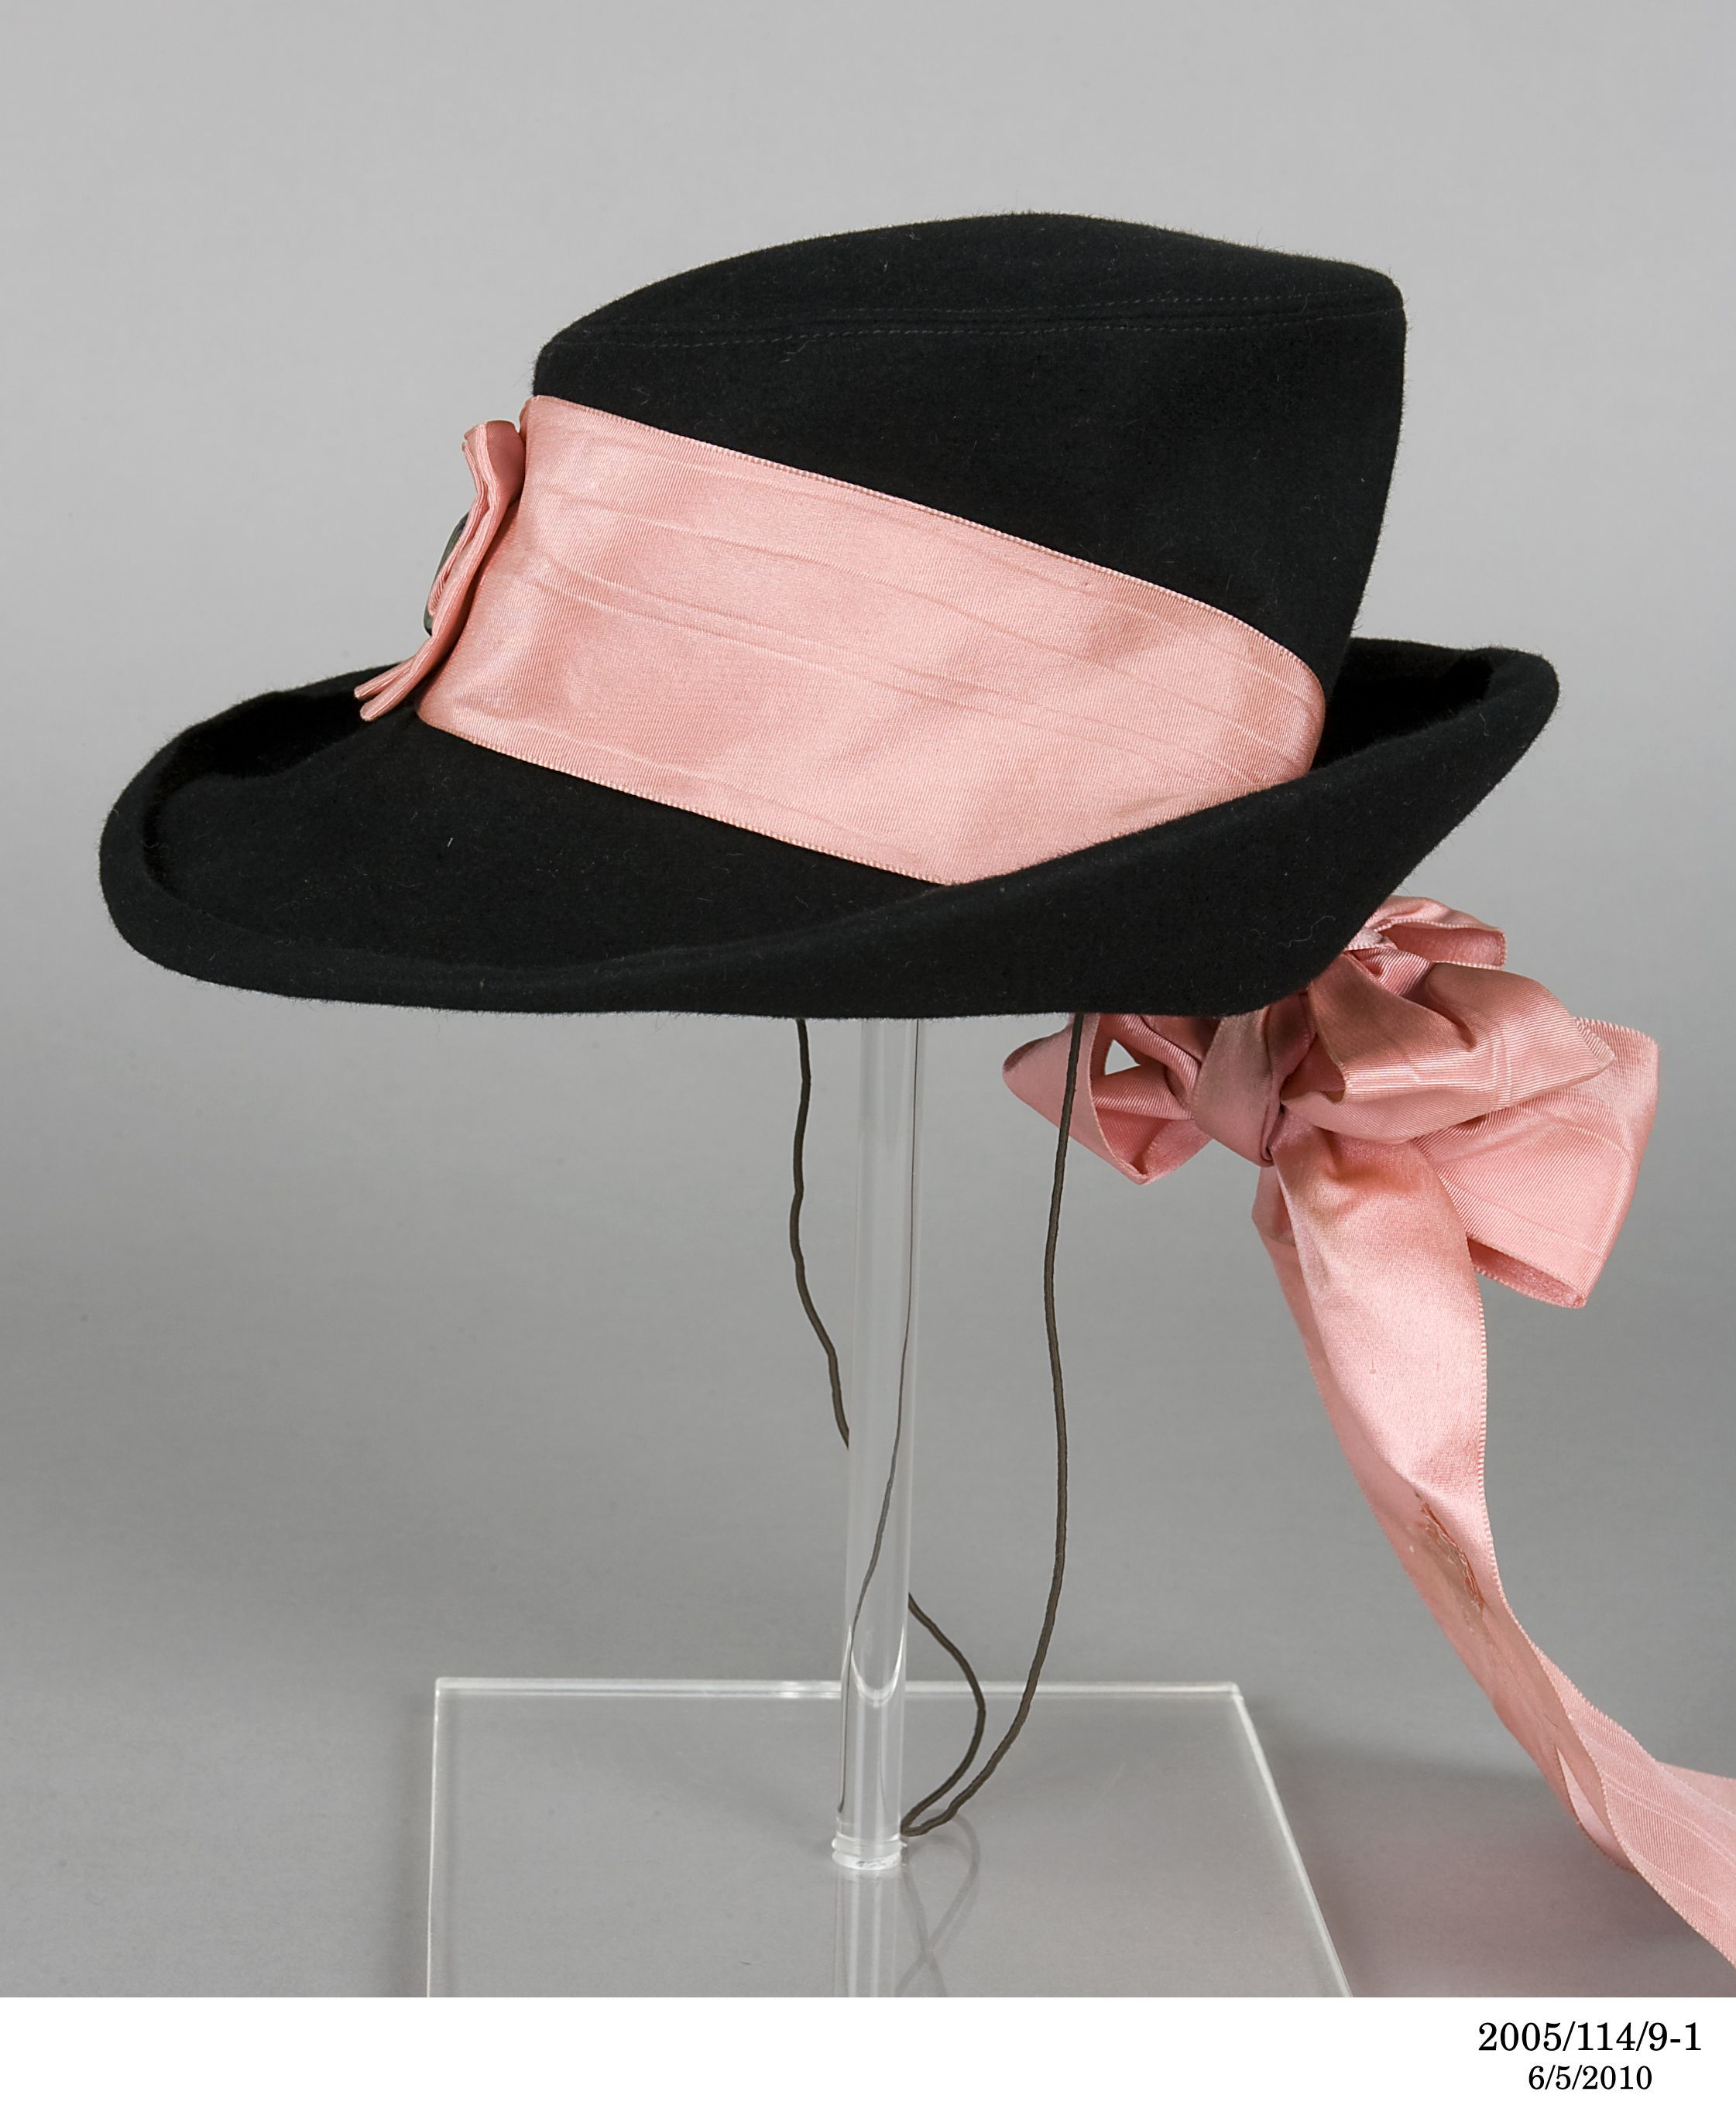 The Hat Was Made By Schiaparelli In Paris France In 1938 Madeschiaparelli 1938 History Notesheather Waddell Purch Elegant Hats Elsa Schiaparelli Hats Vintage